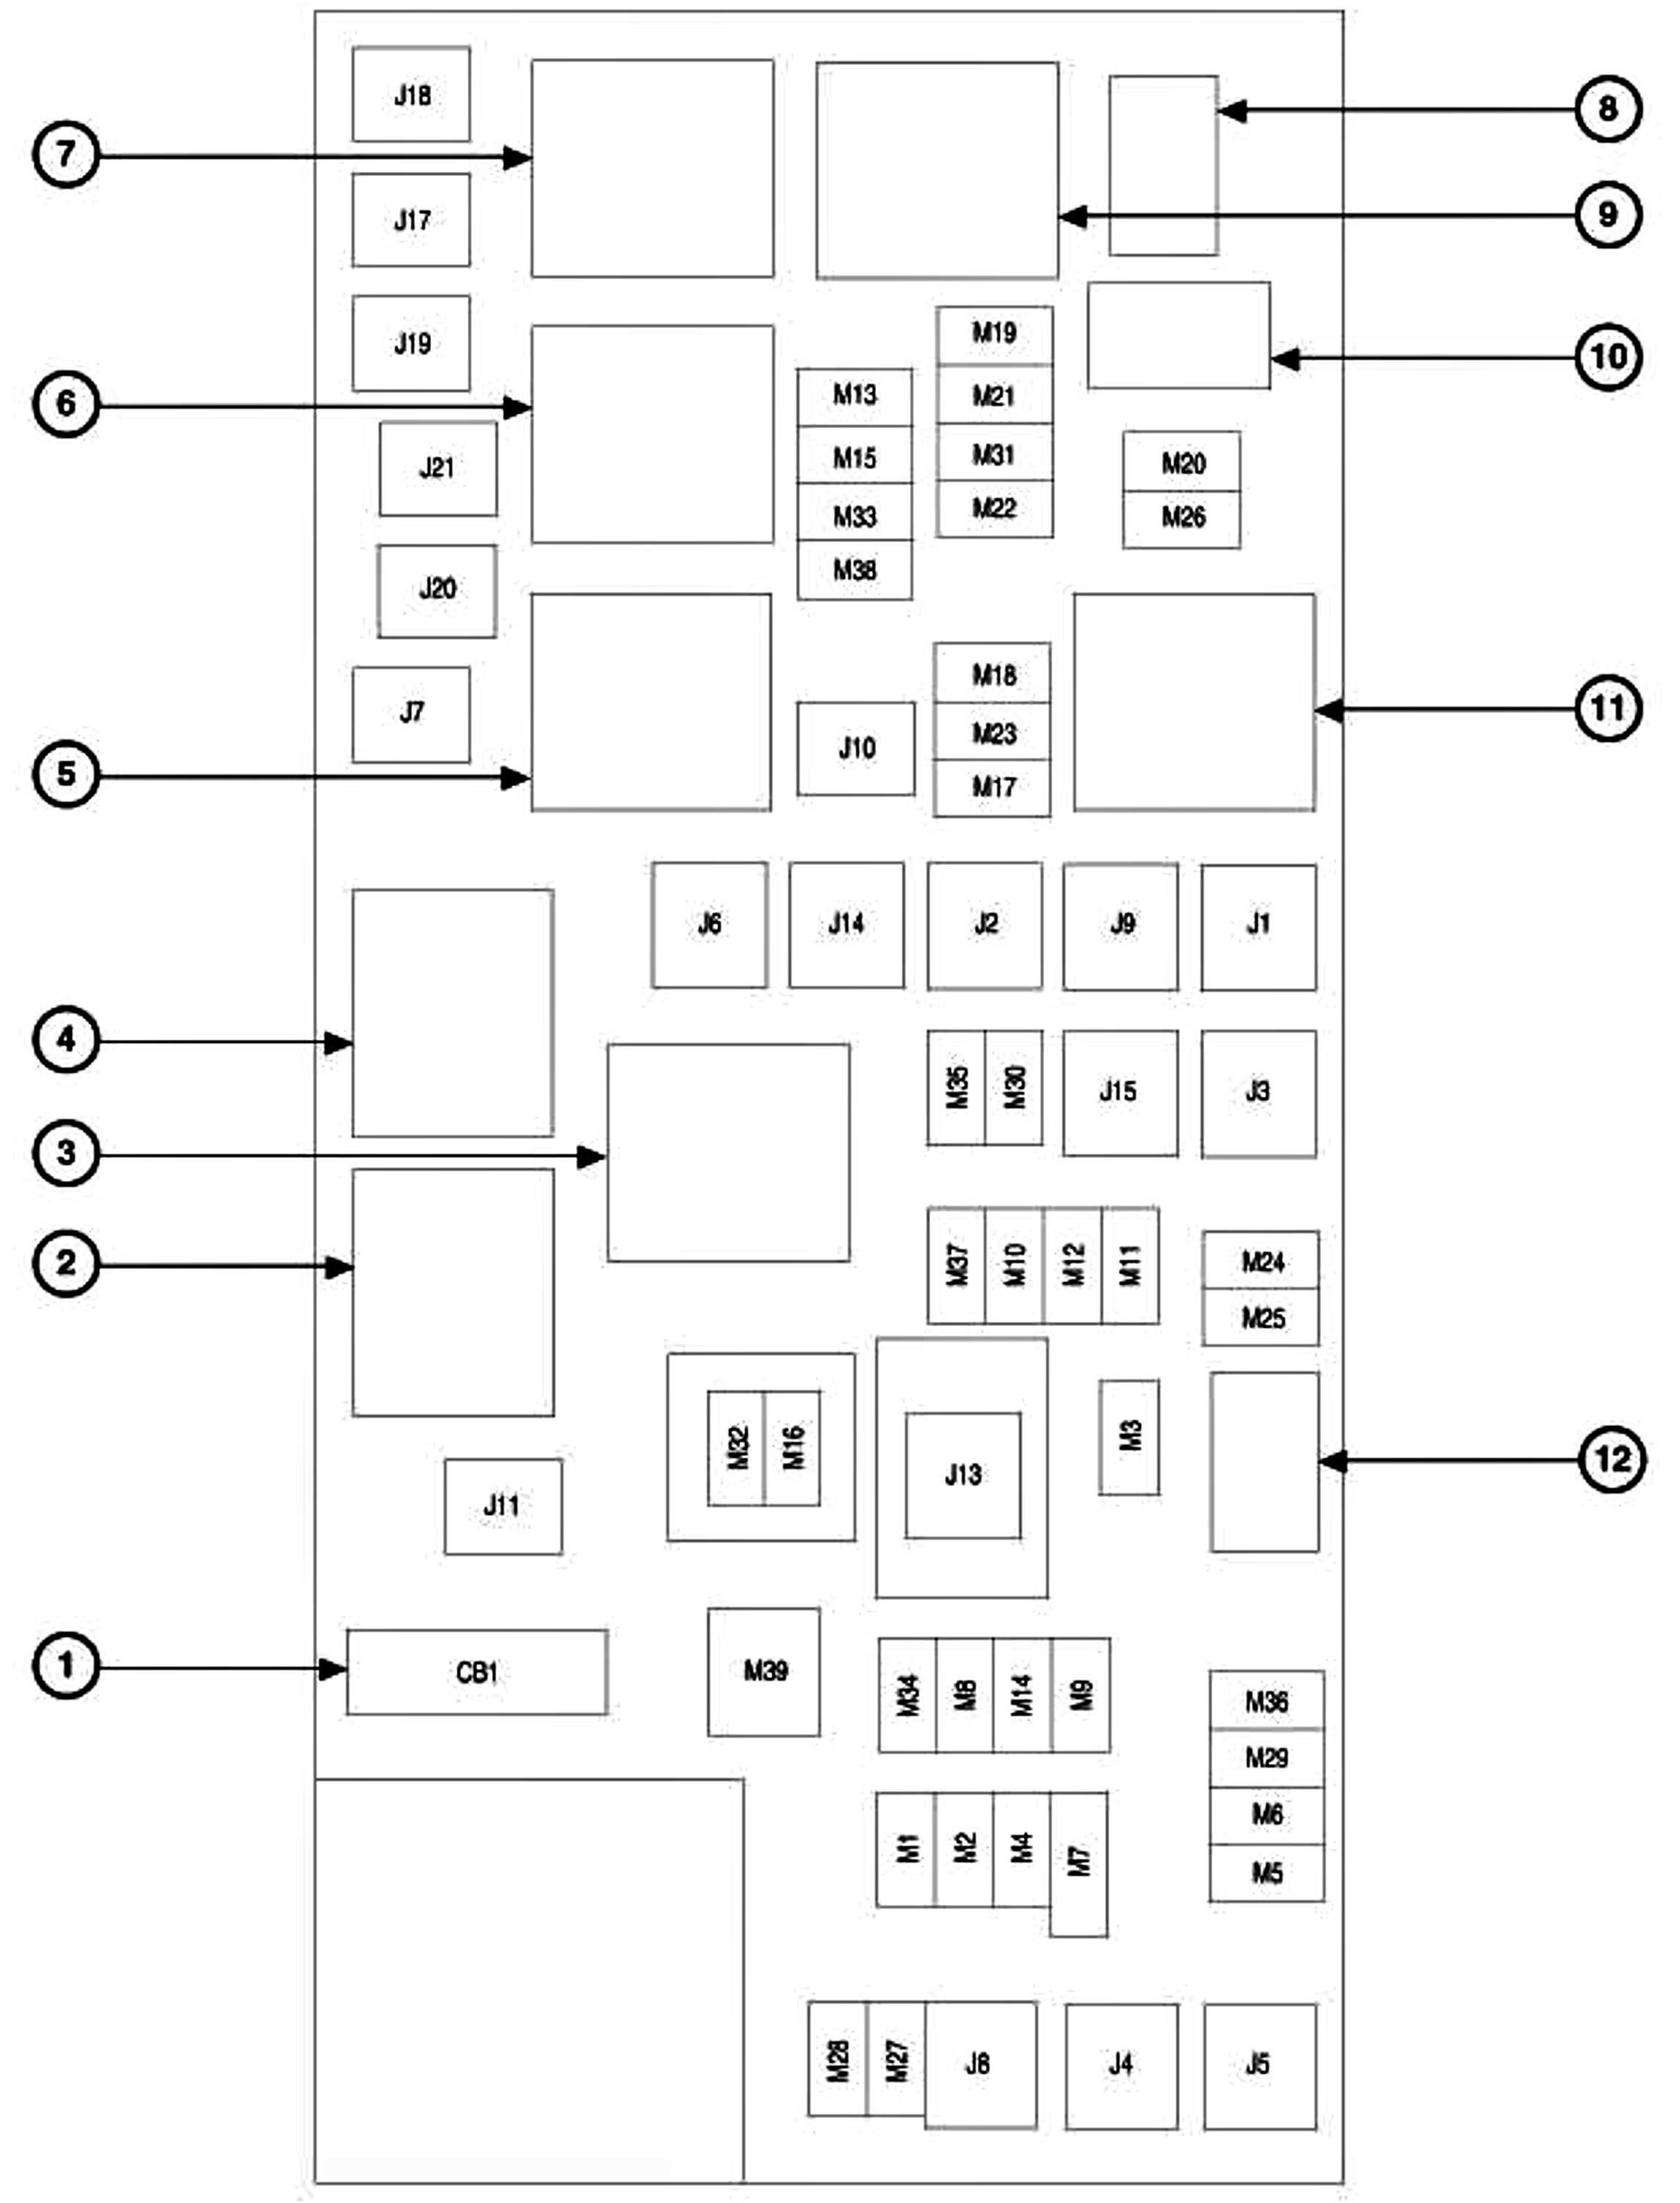 2006 jeep commander fuse box diagram jpeg http carimagescolay rh pinterest com 2006 jeep commander under dash fuse diagram 2006 jeep commander fuse diagram